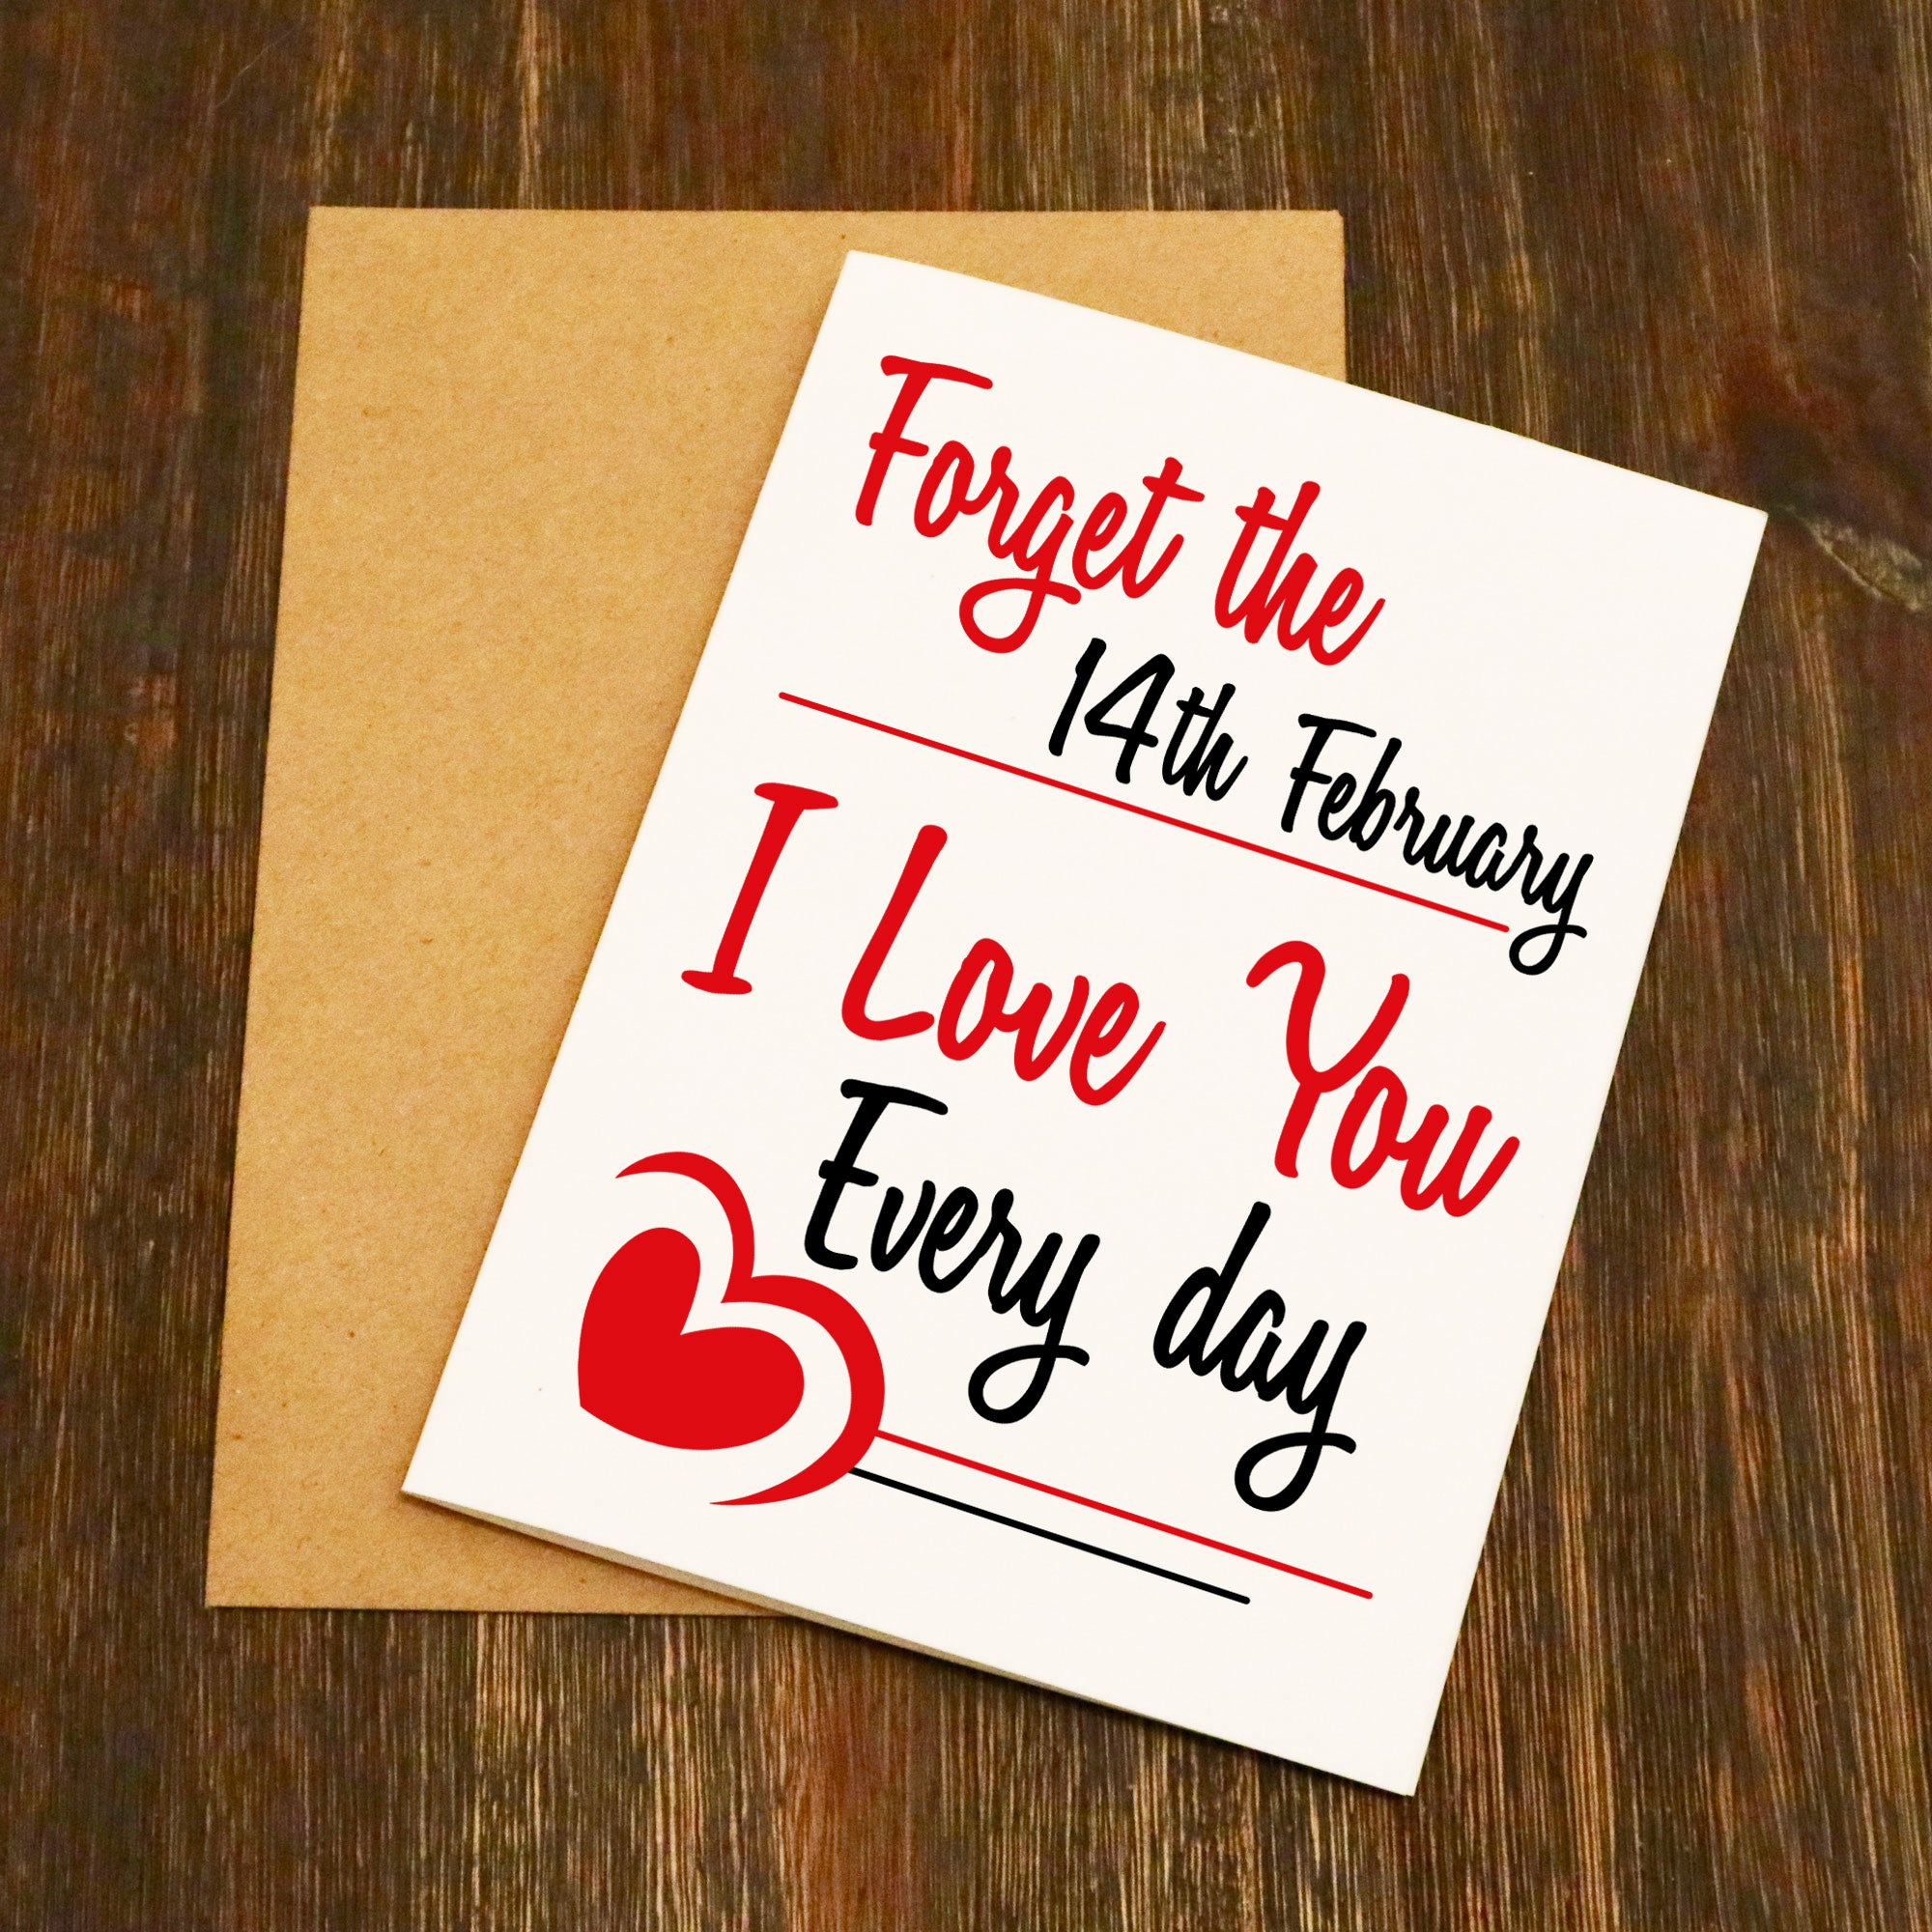 forget the 14th february i love you everyday valentine s card